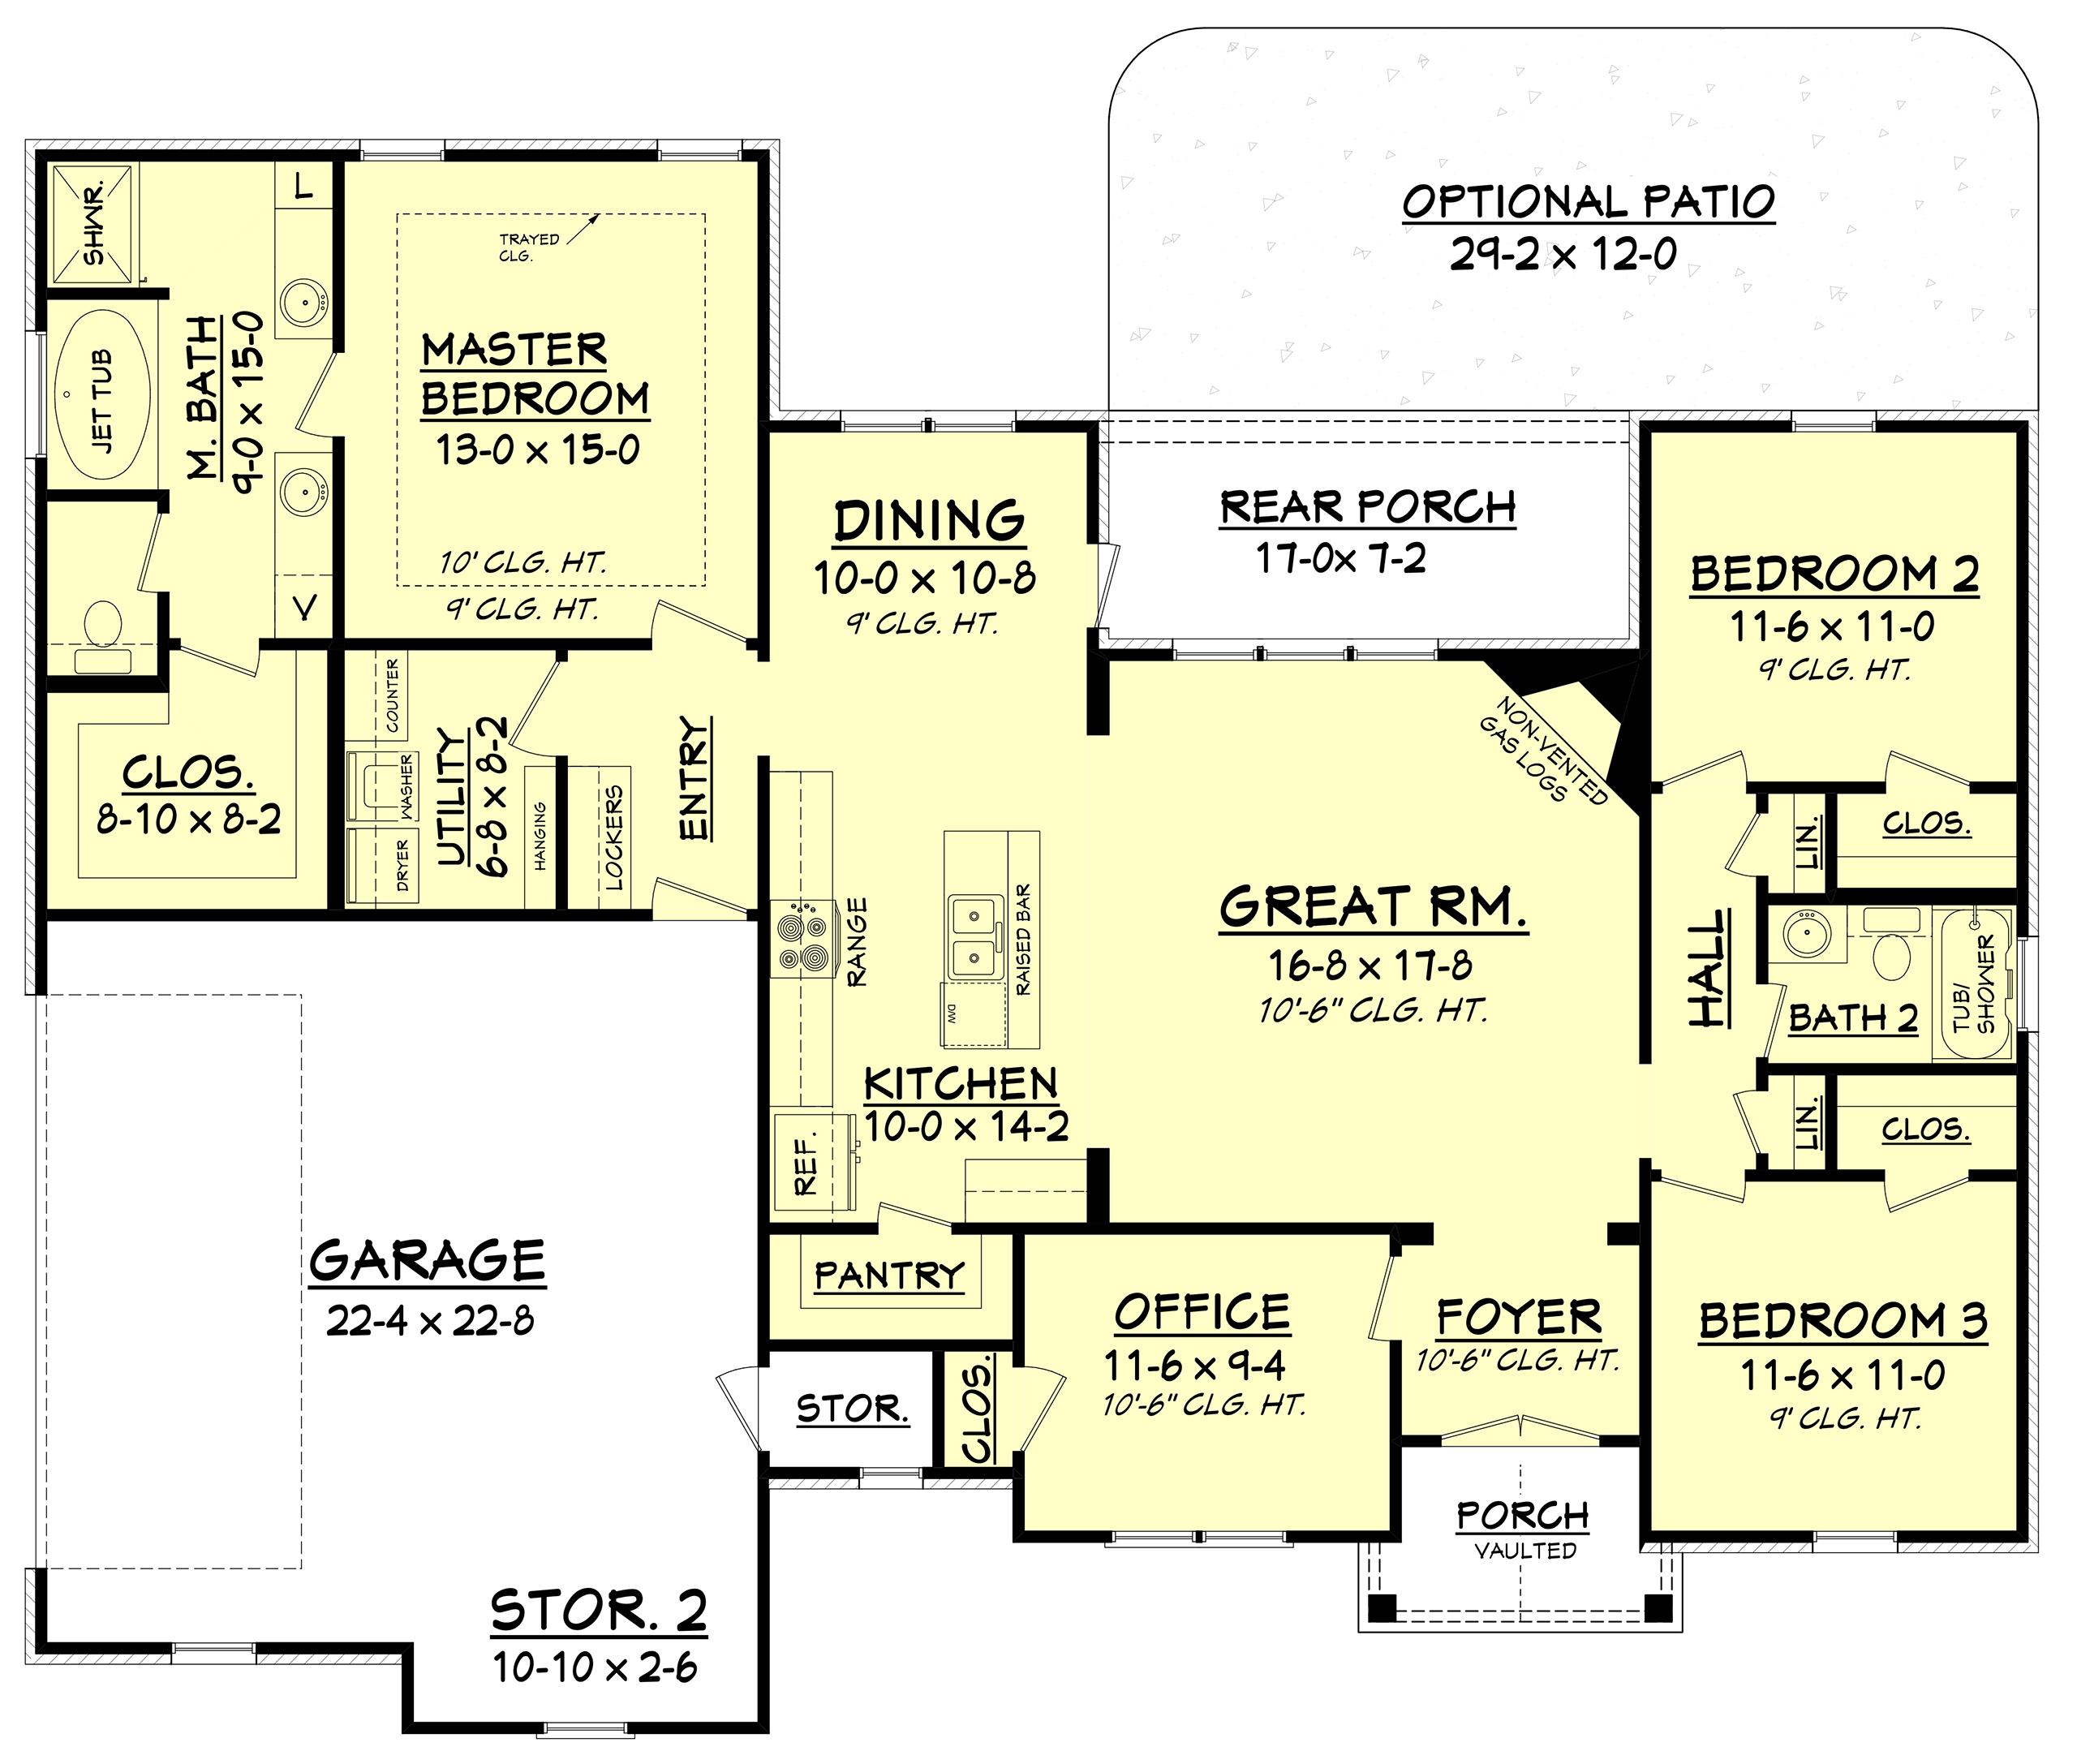 3 Bedroom House Floor Plans: House Plan #142-1075: 3 Bdrm, 1,769 Sq Ft Traditional Home